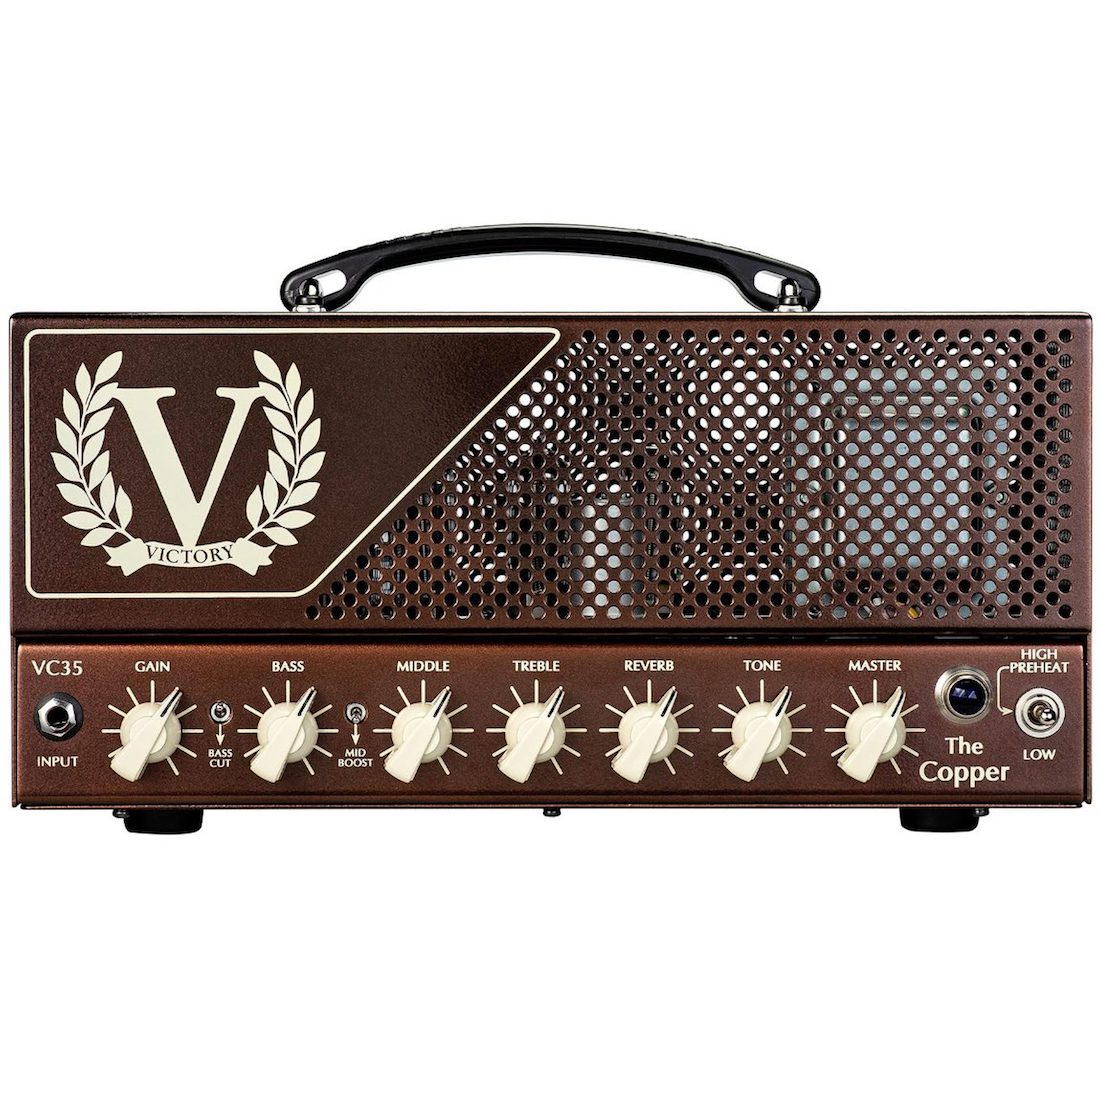 Victory VC35 The Copper